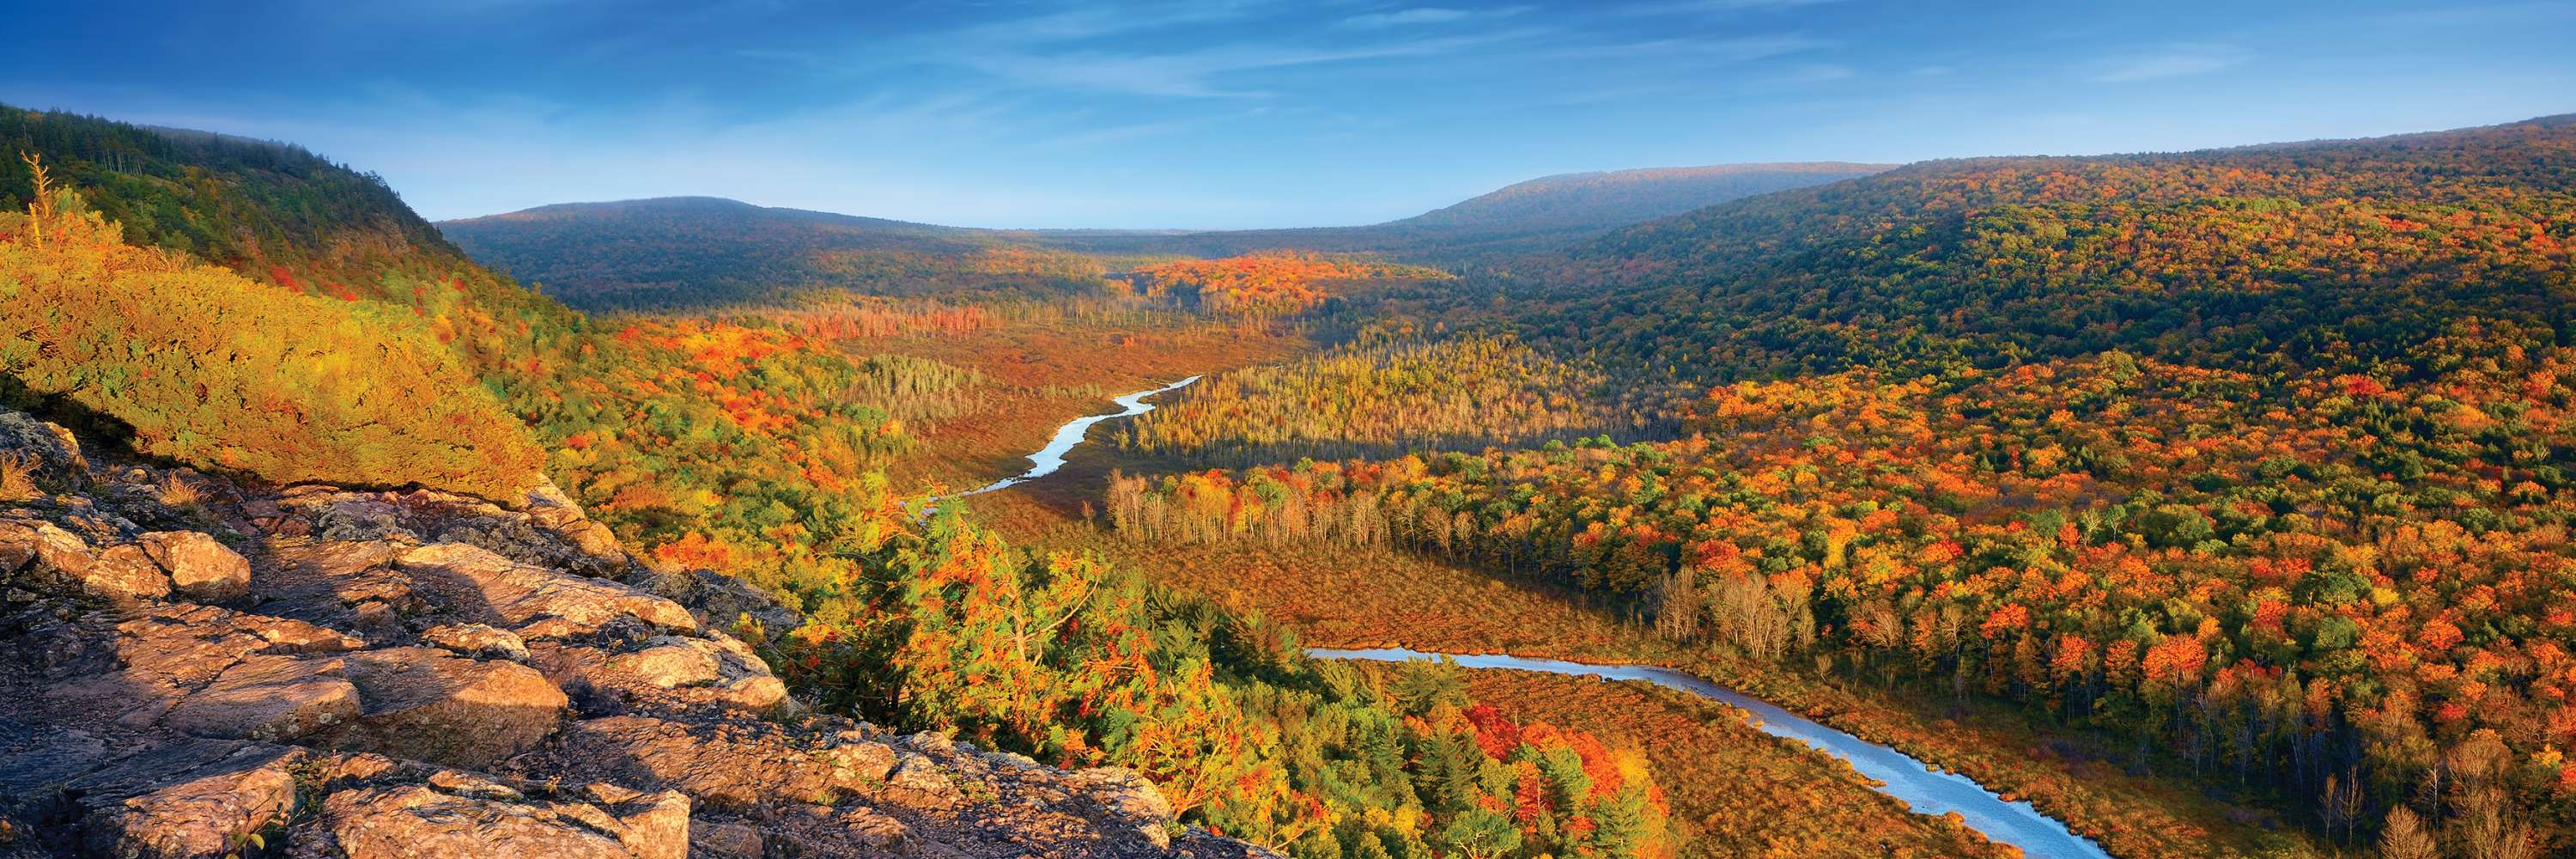 Porcupine Mountains Wilderness State Park in the Fall